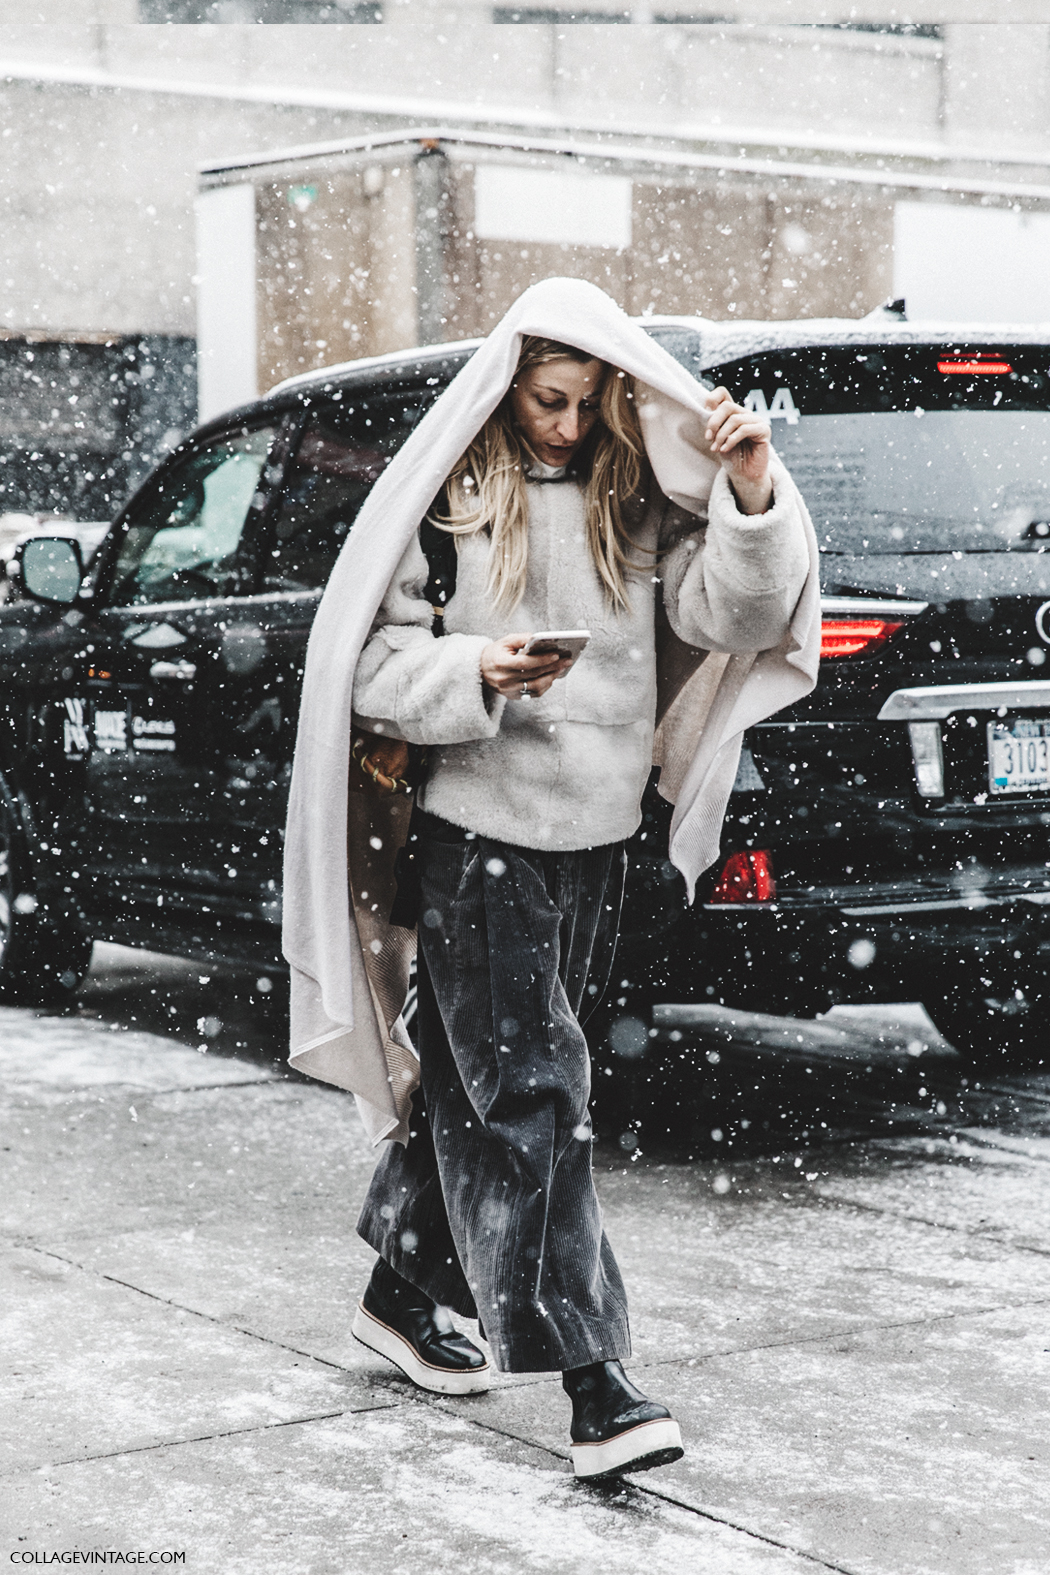 NYFW-New_York_Fashion_Week-Fall_Winter-17-Street_Style-Ada_kokosar-2